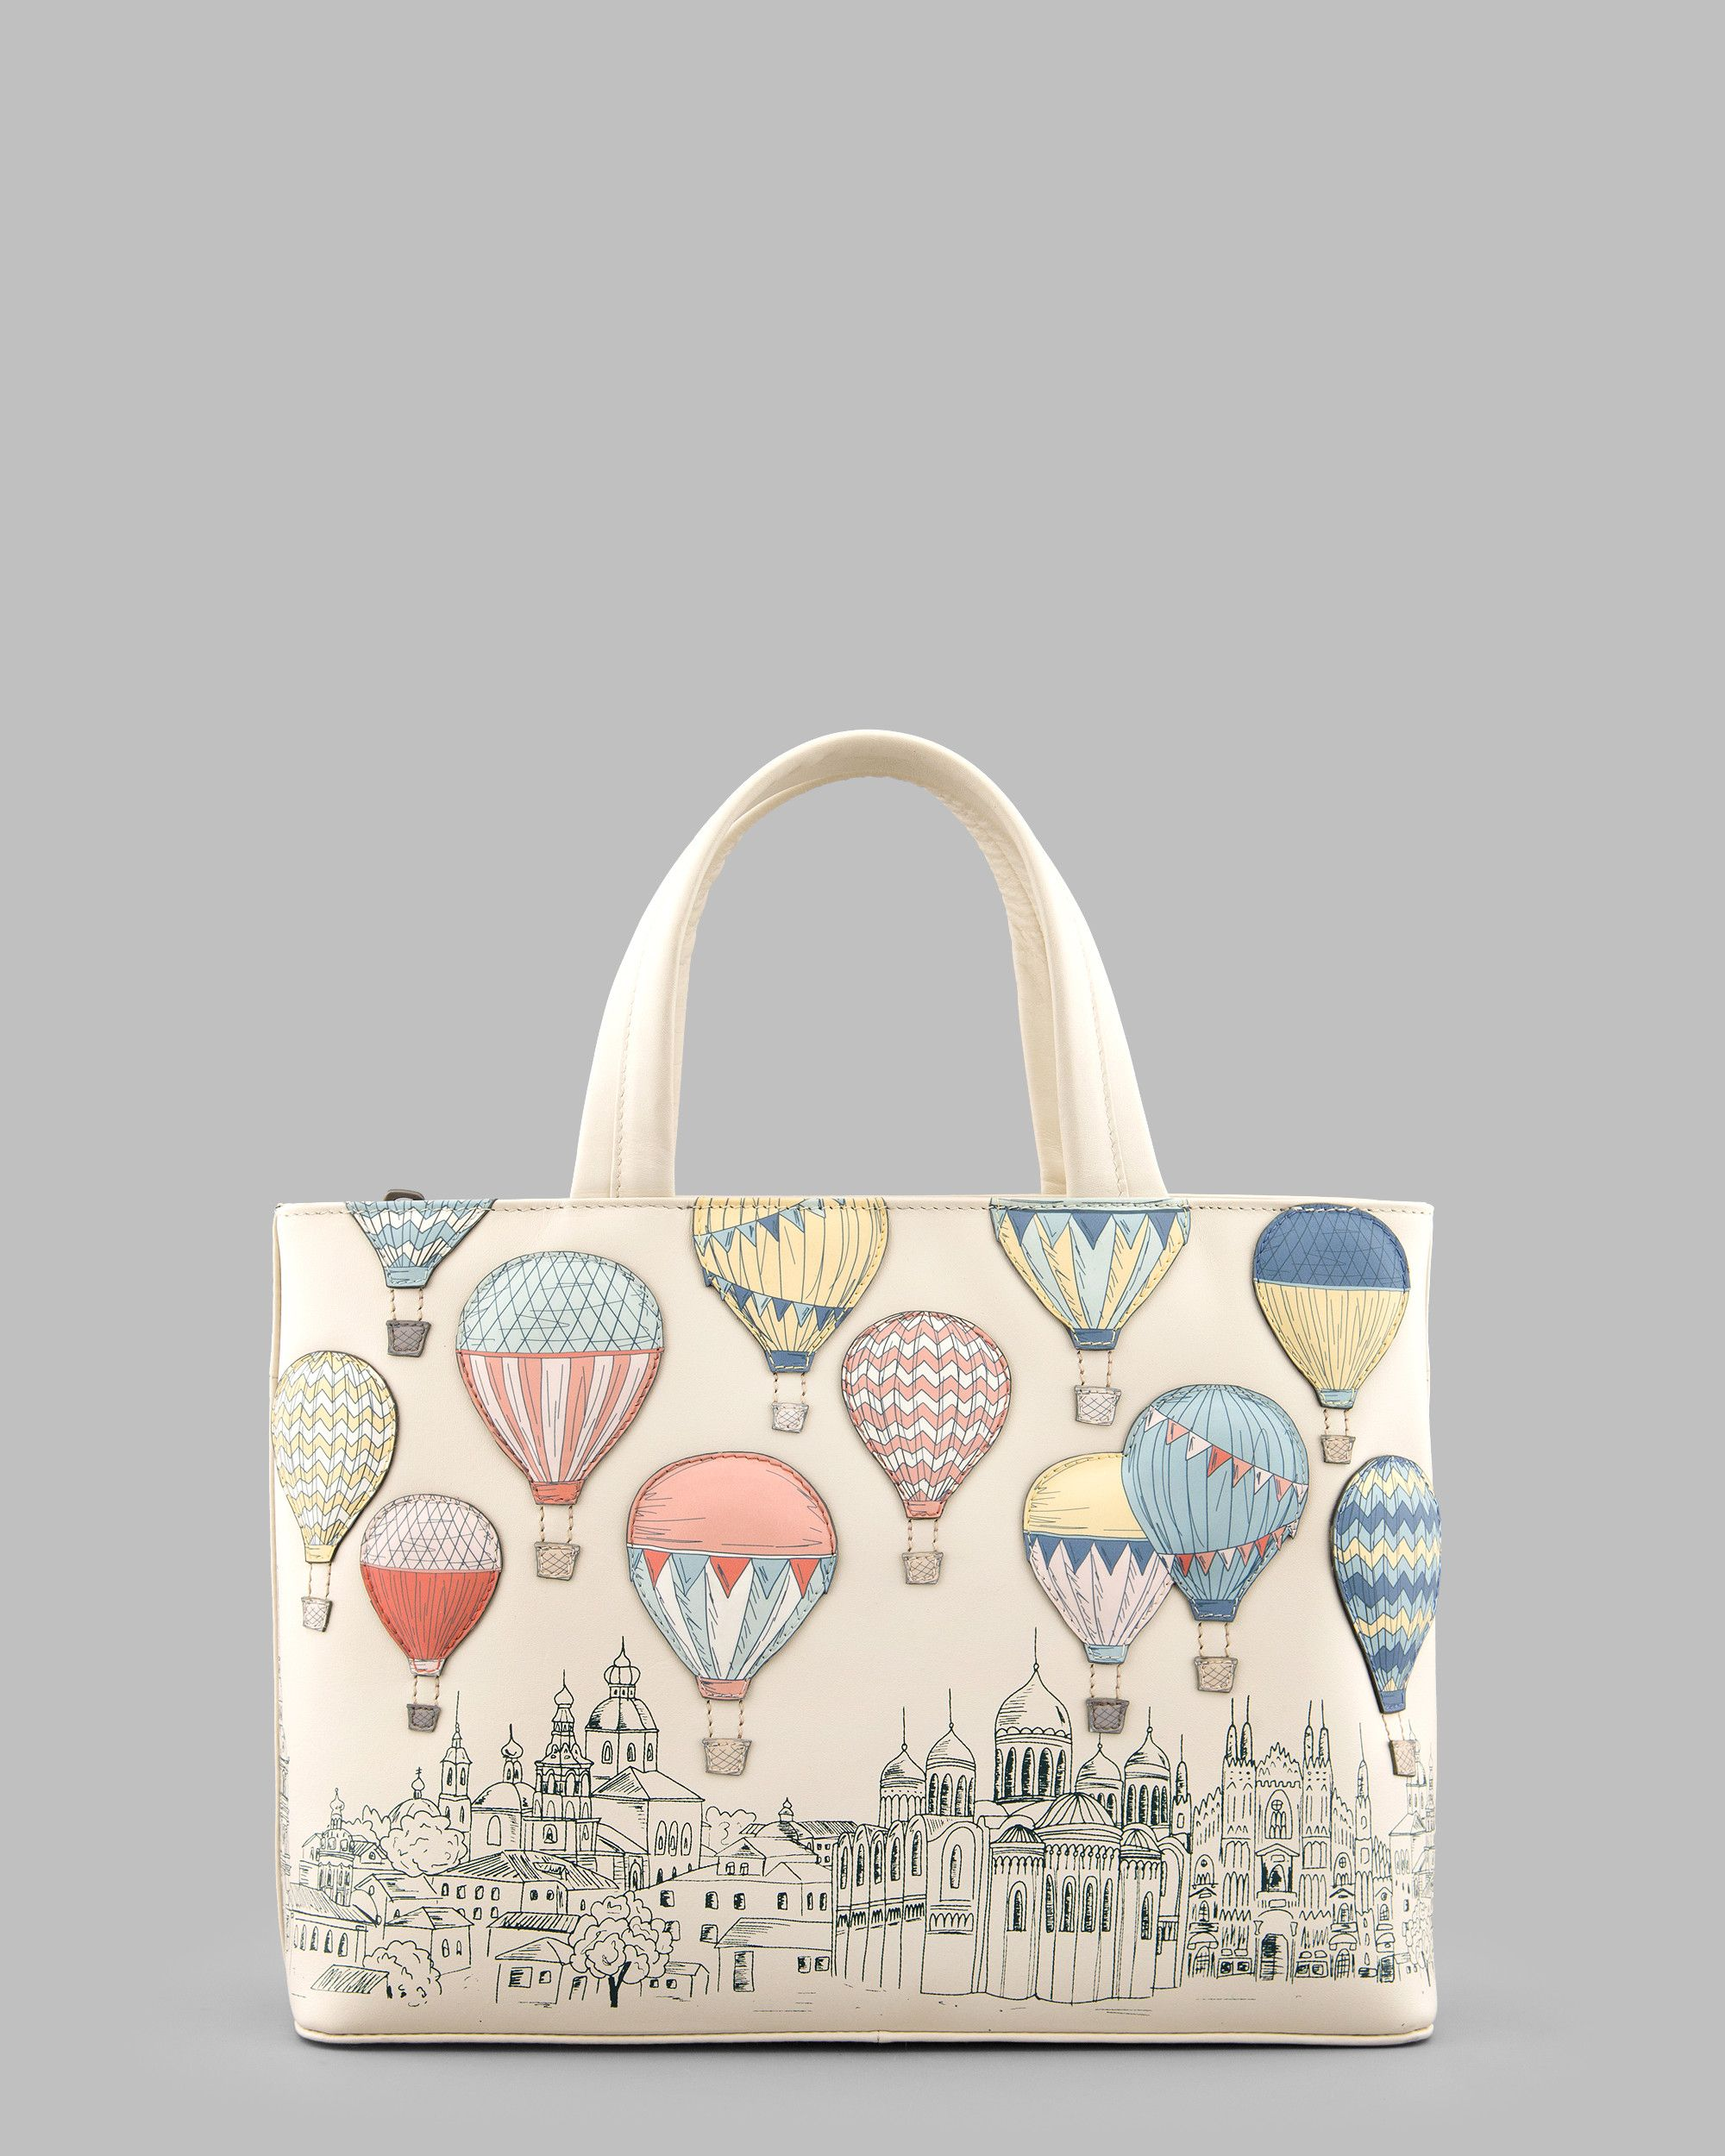 Amongst The Clouds Cream Leather Ladies Grab Bag By Yoshi. The ...